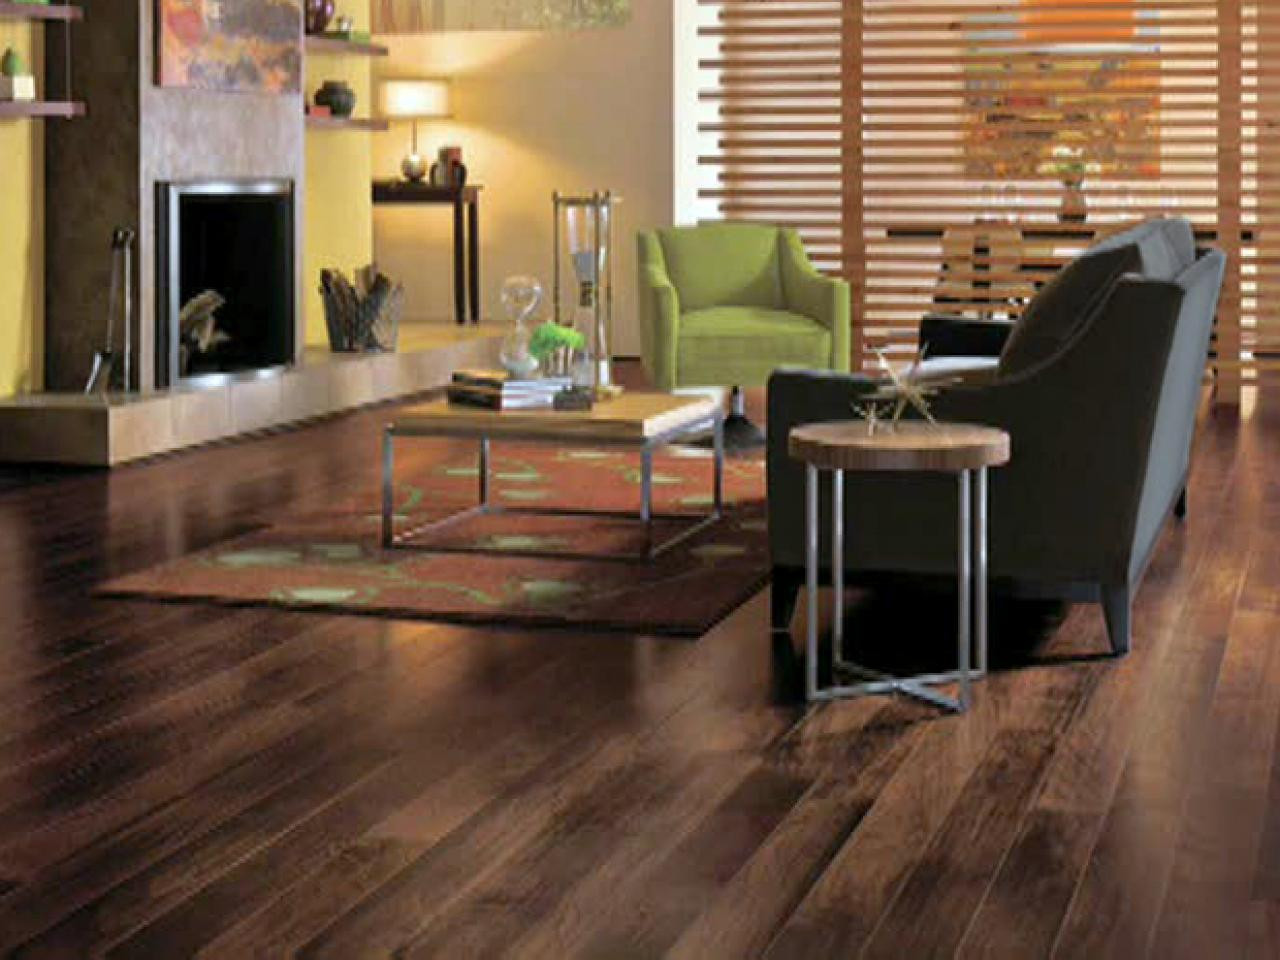 hardwood flooring lowest price of hardwood floors living room flooring love how the lightd makes floor within full size of guide to selecting flooring diy livingom decorating ideas hardwood floors grey wood tile